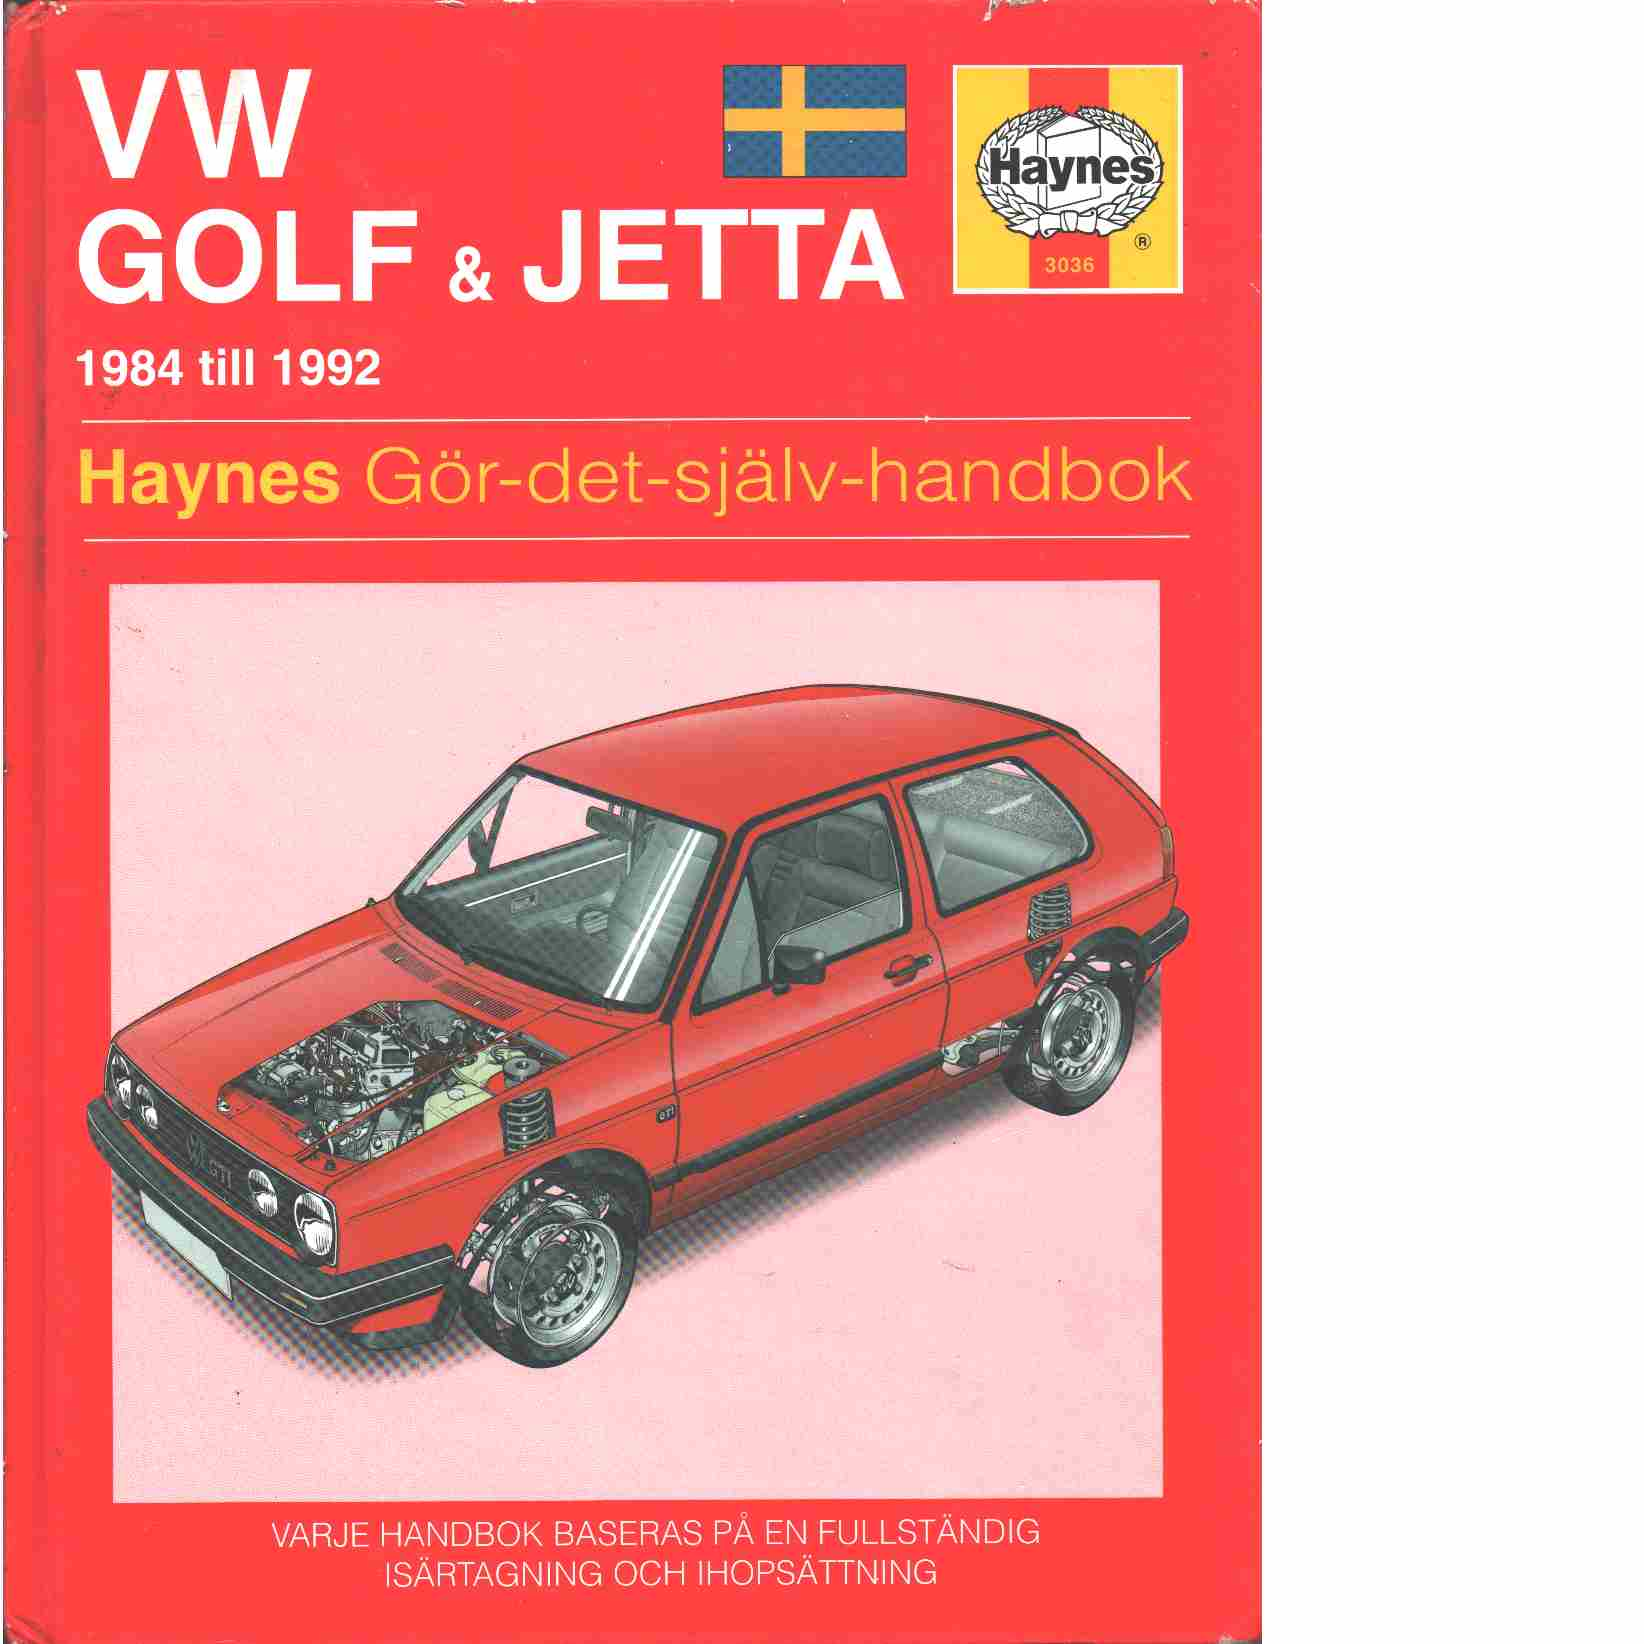 VW Golf & Jetta - Coomber, I. M.